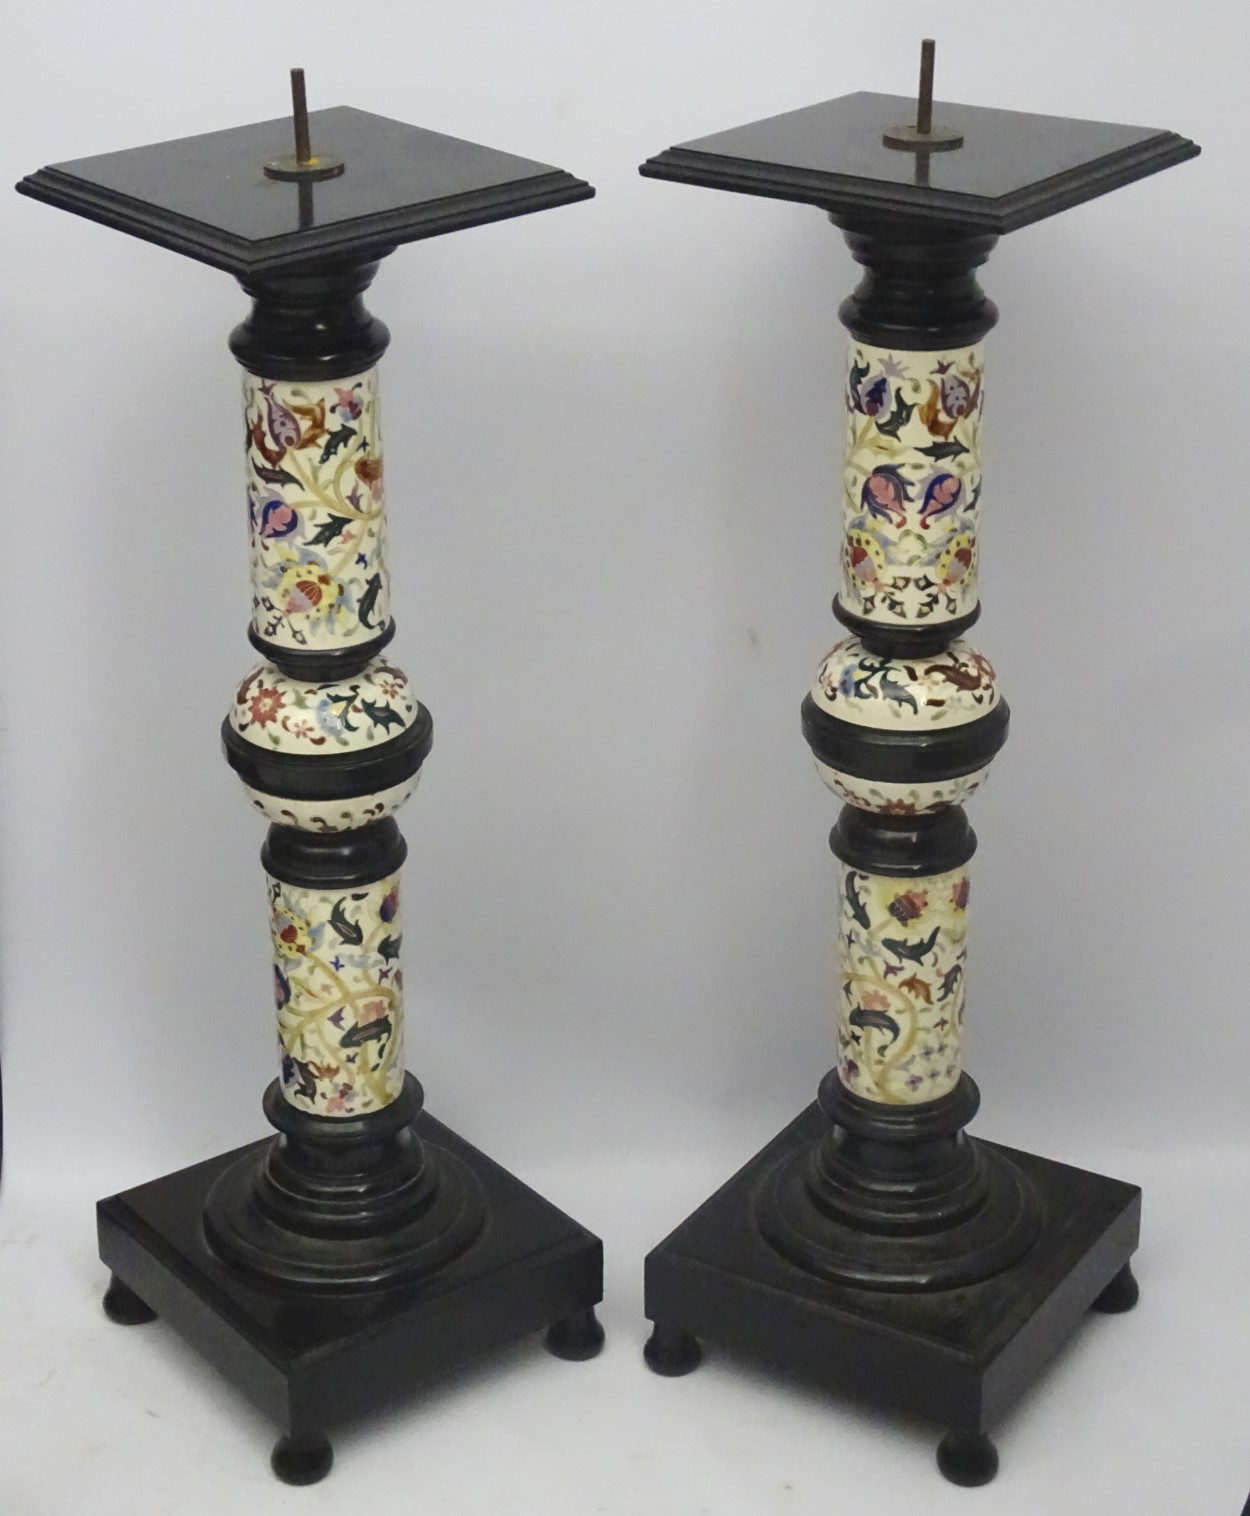 Lot 92 - A pair of early 20thC columns/stands in the Zsolnay faience style,